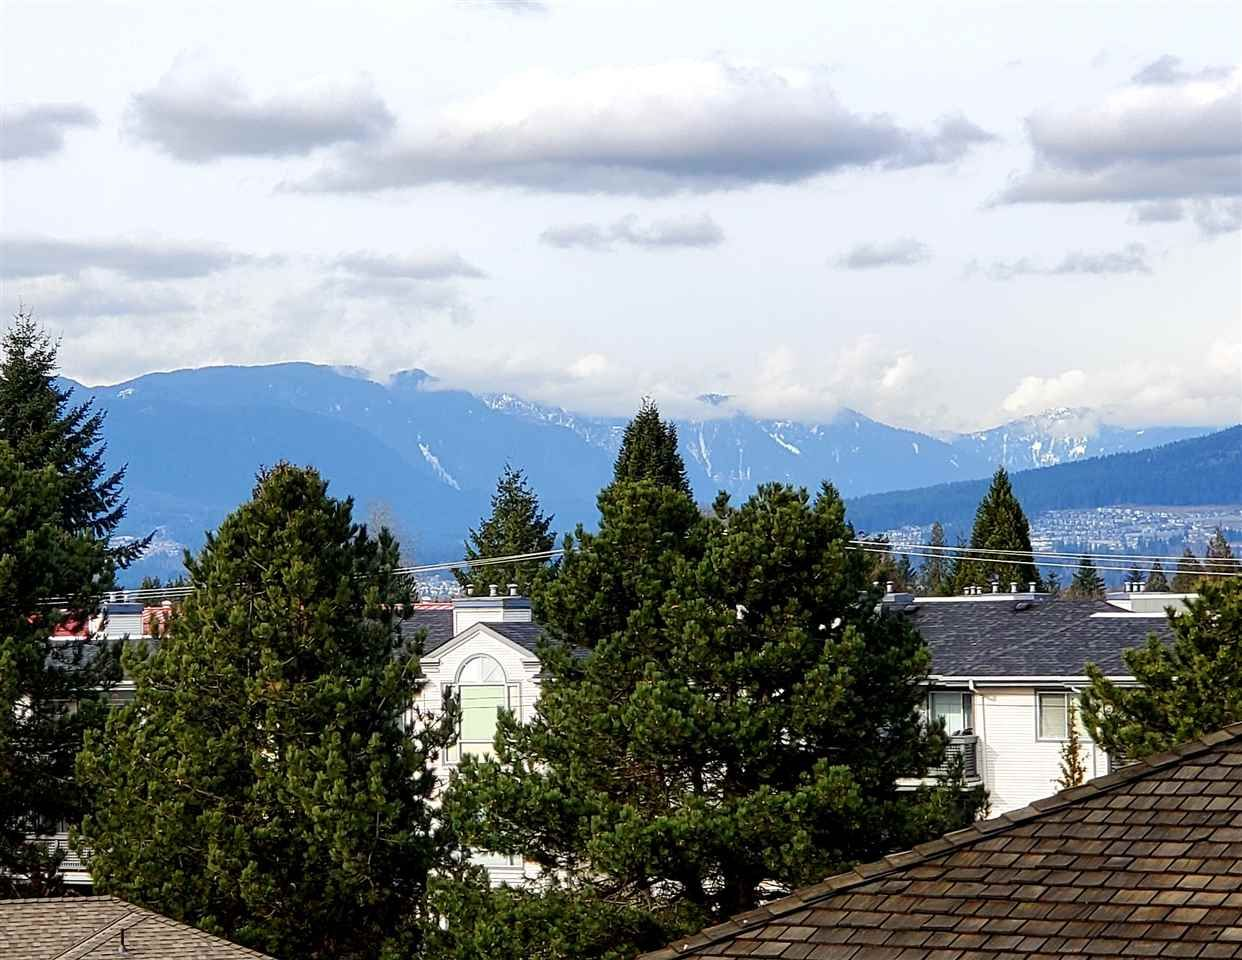 """Main Photo: 401 19130 FORD Road in Pitt Meadows: Central Meadows Condo for sale in """"BEACON SQUARE"""" : MLS®# R2546011"""